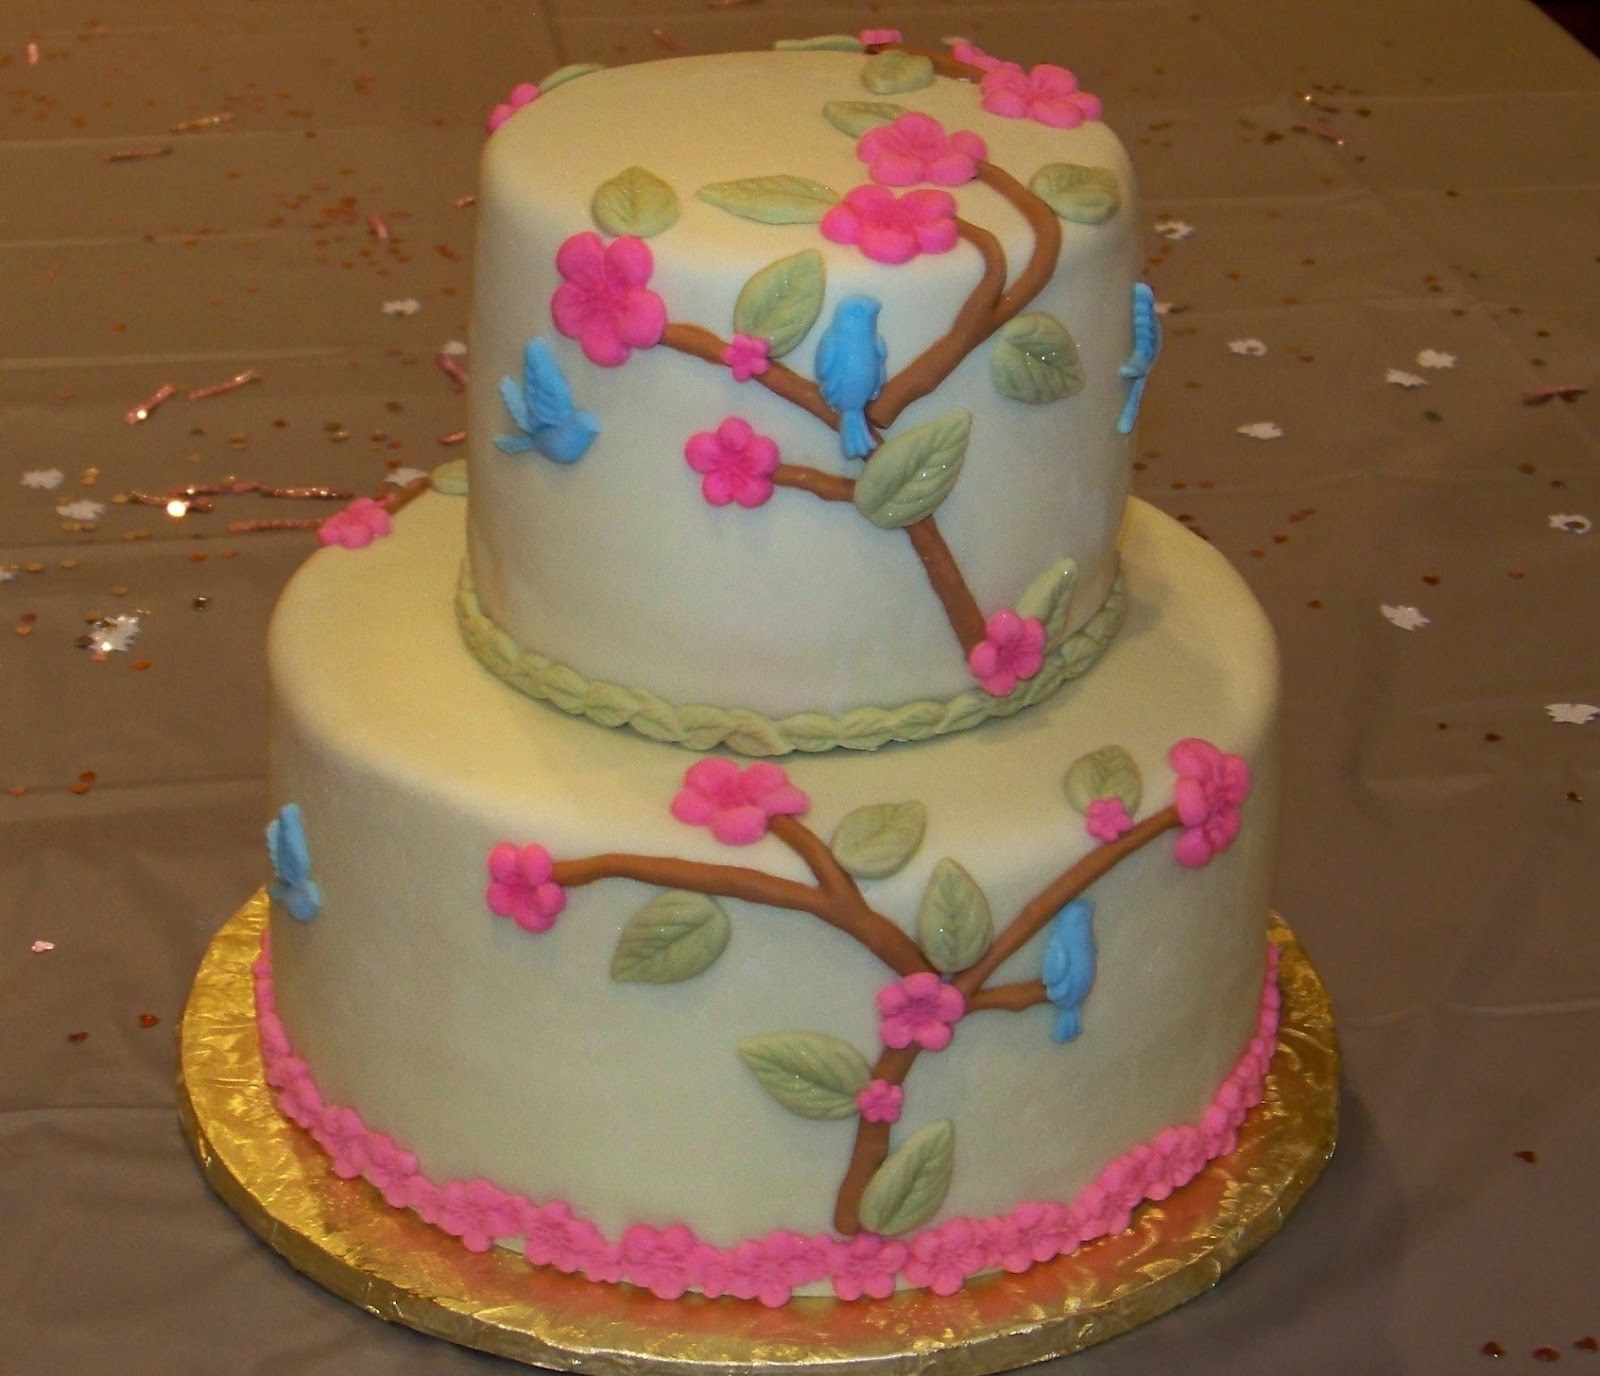 Cake Decorating Pueblo Co : My Cake by Tori: Tiered cakes